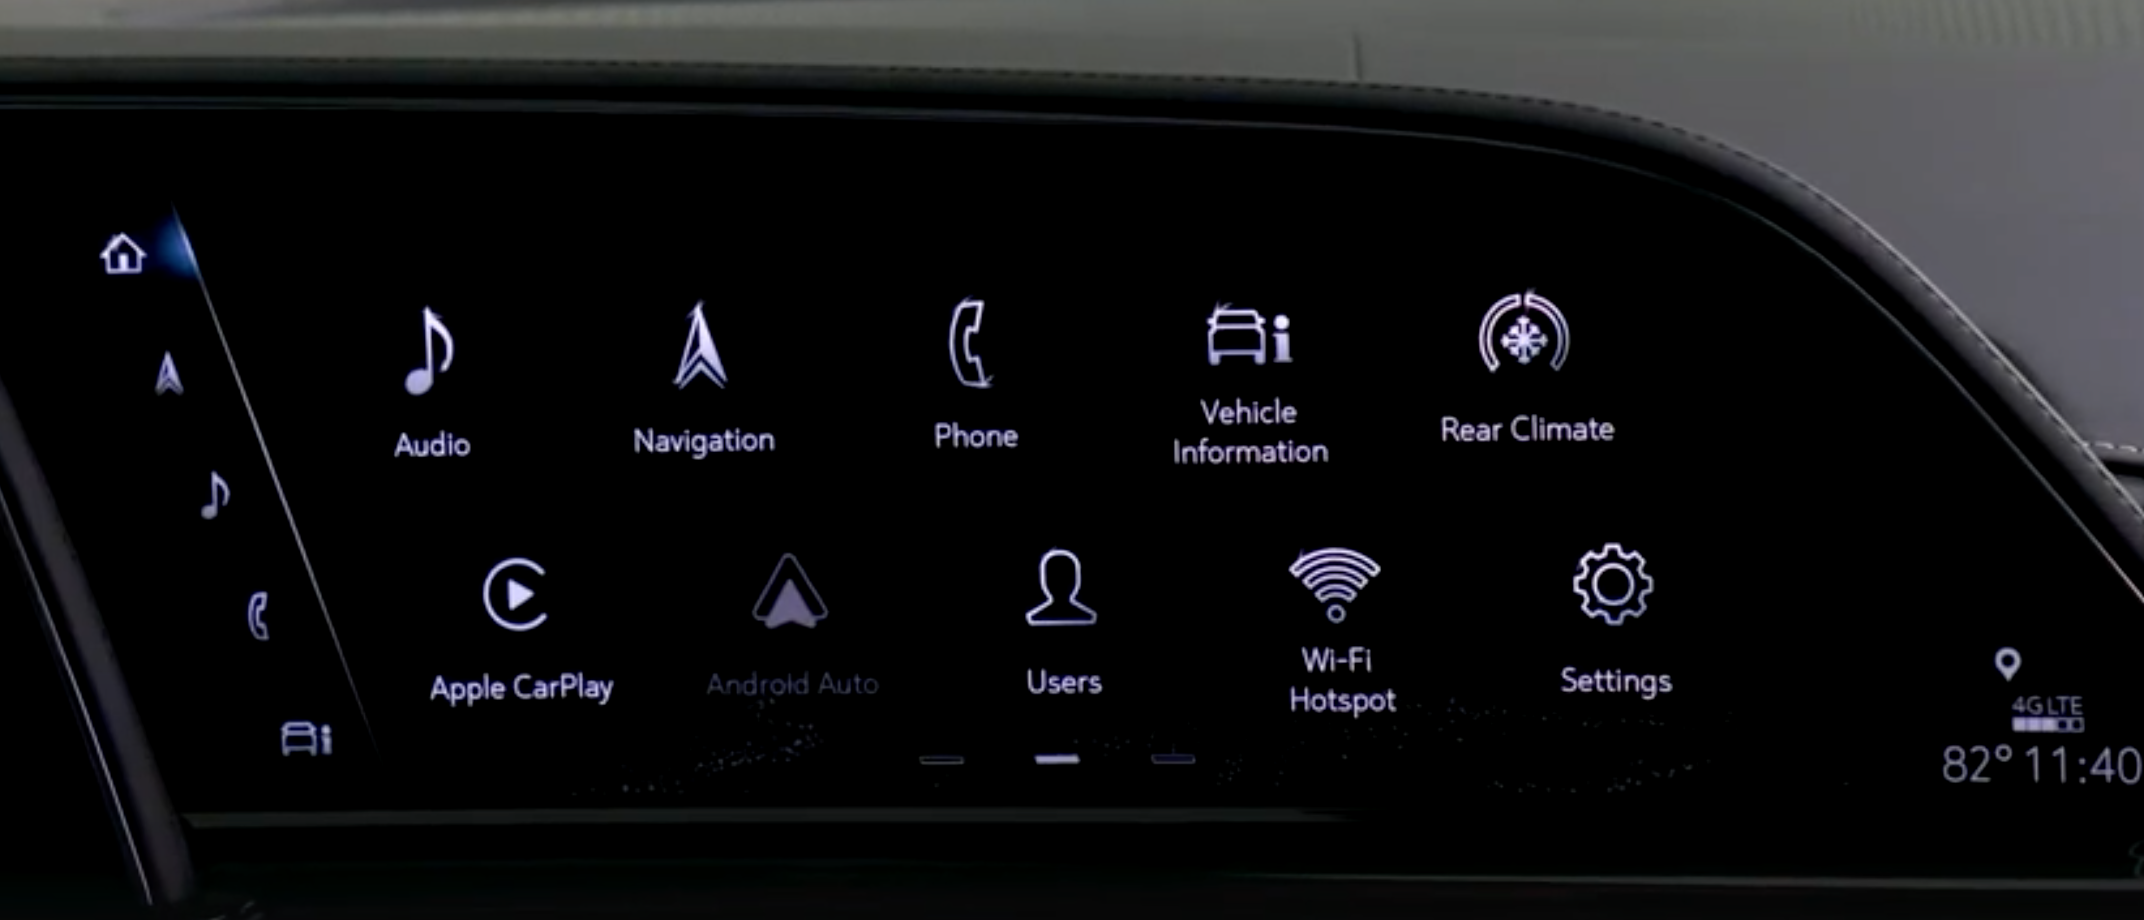 A list of various apps that are in the infotainment system